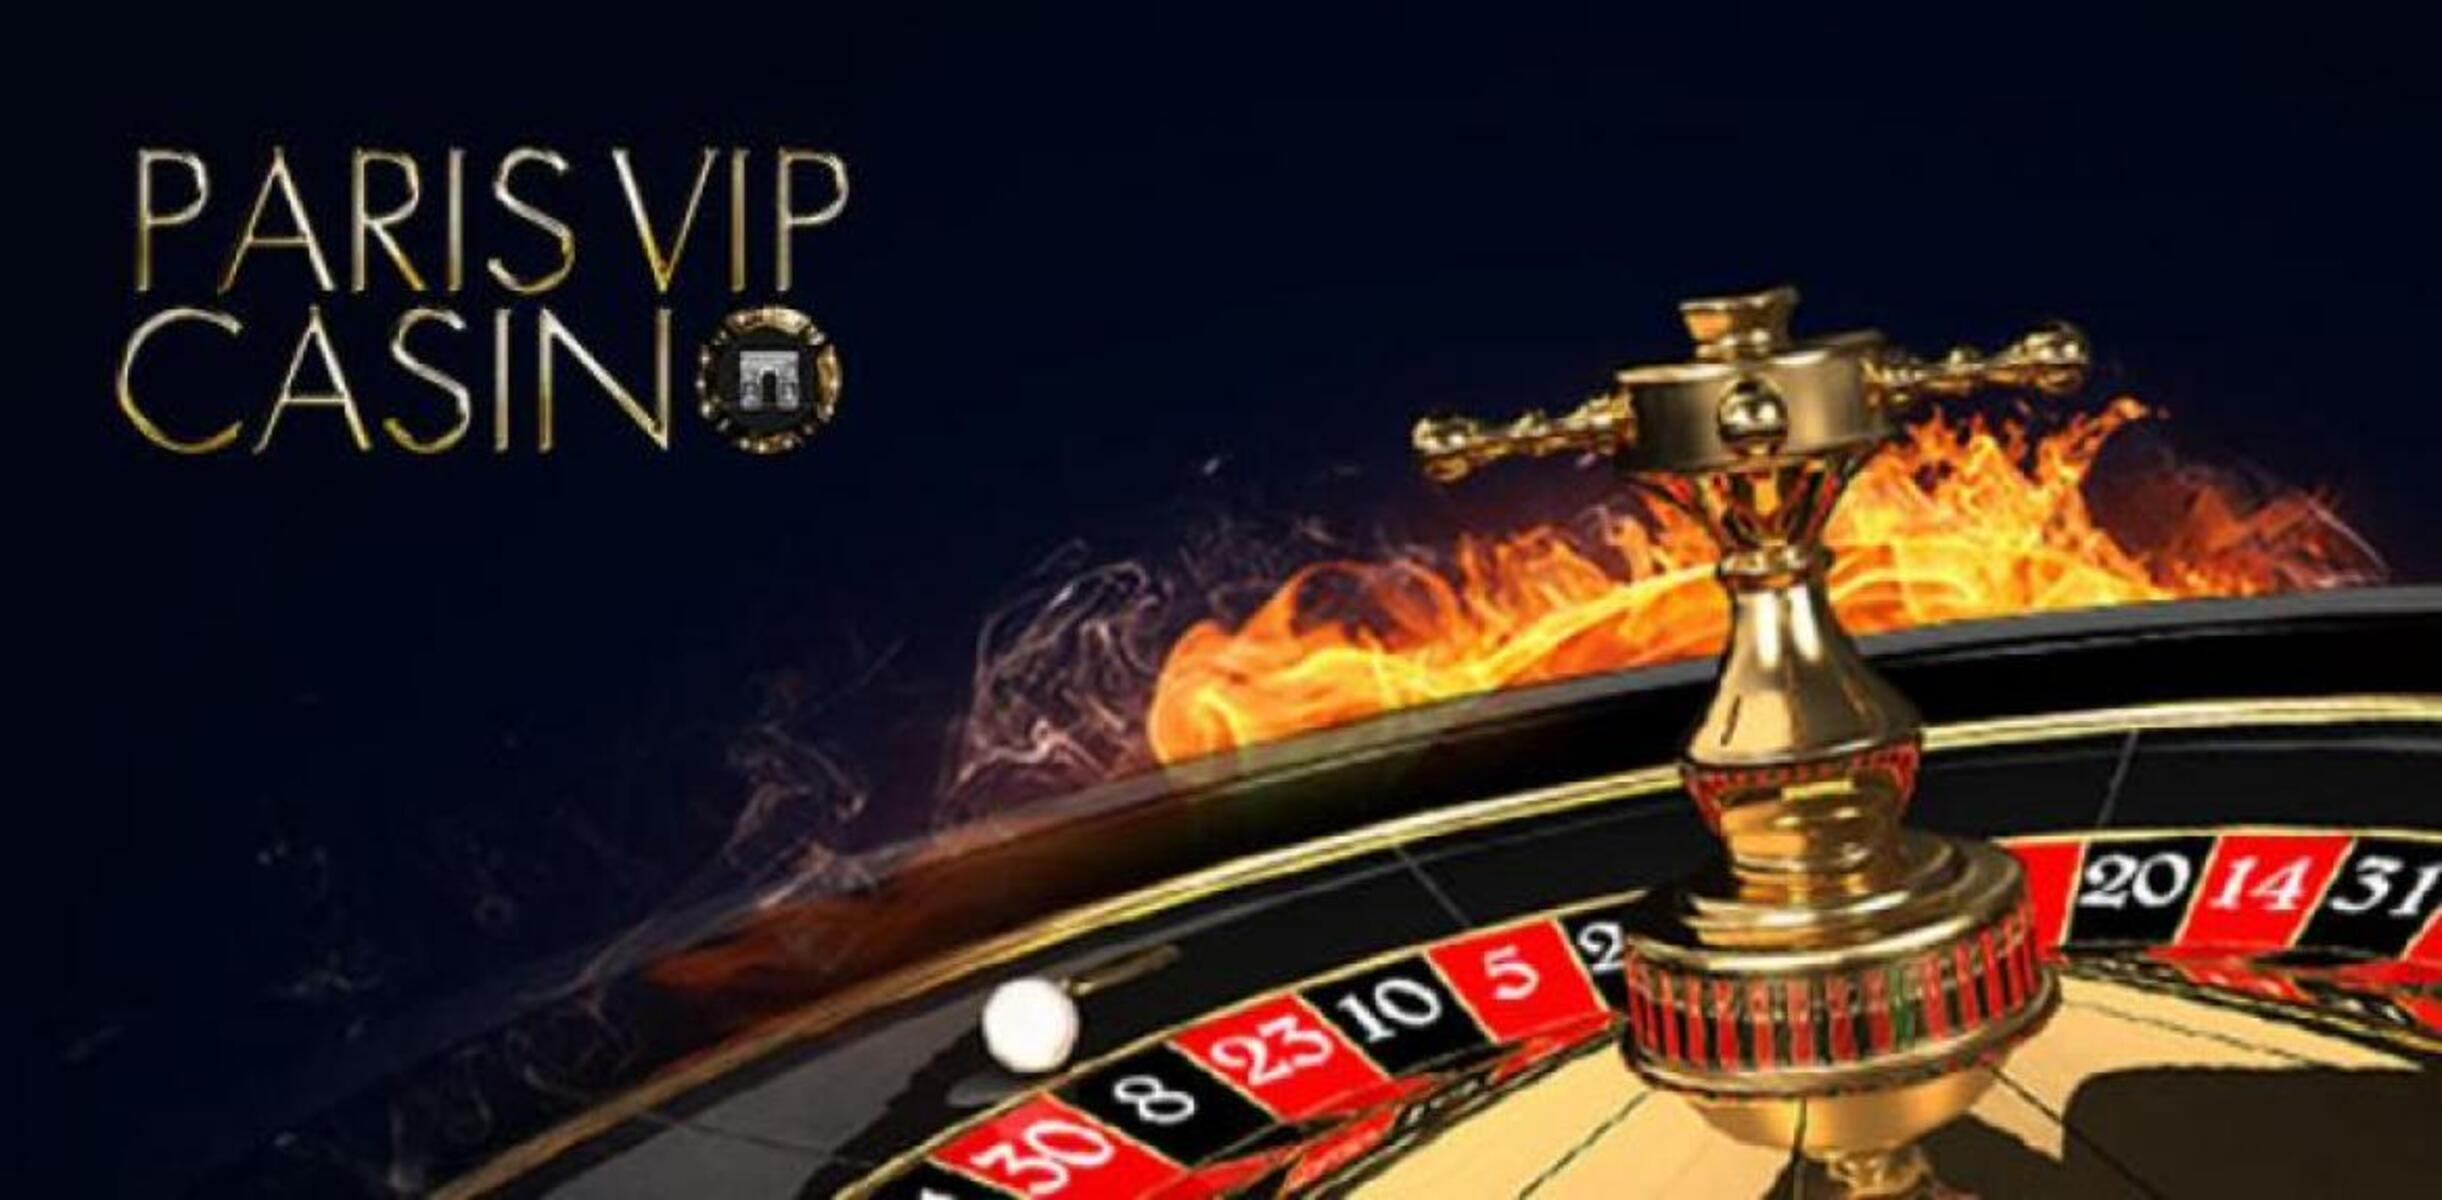 casino Paris VIP